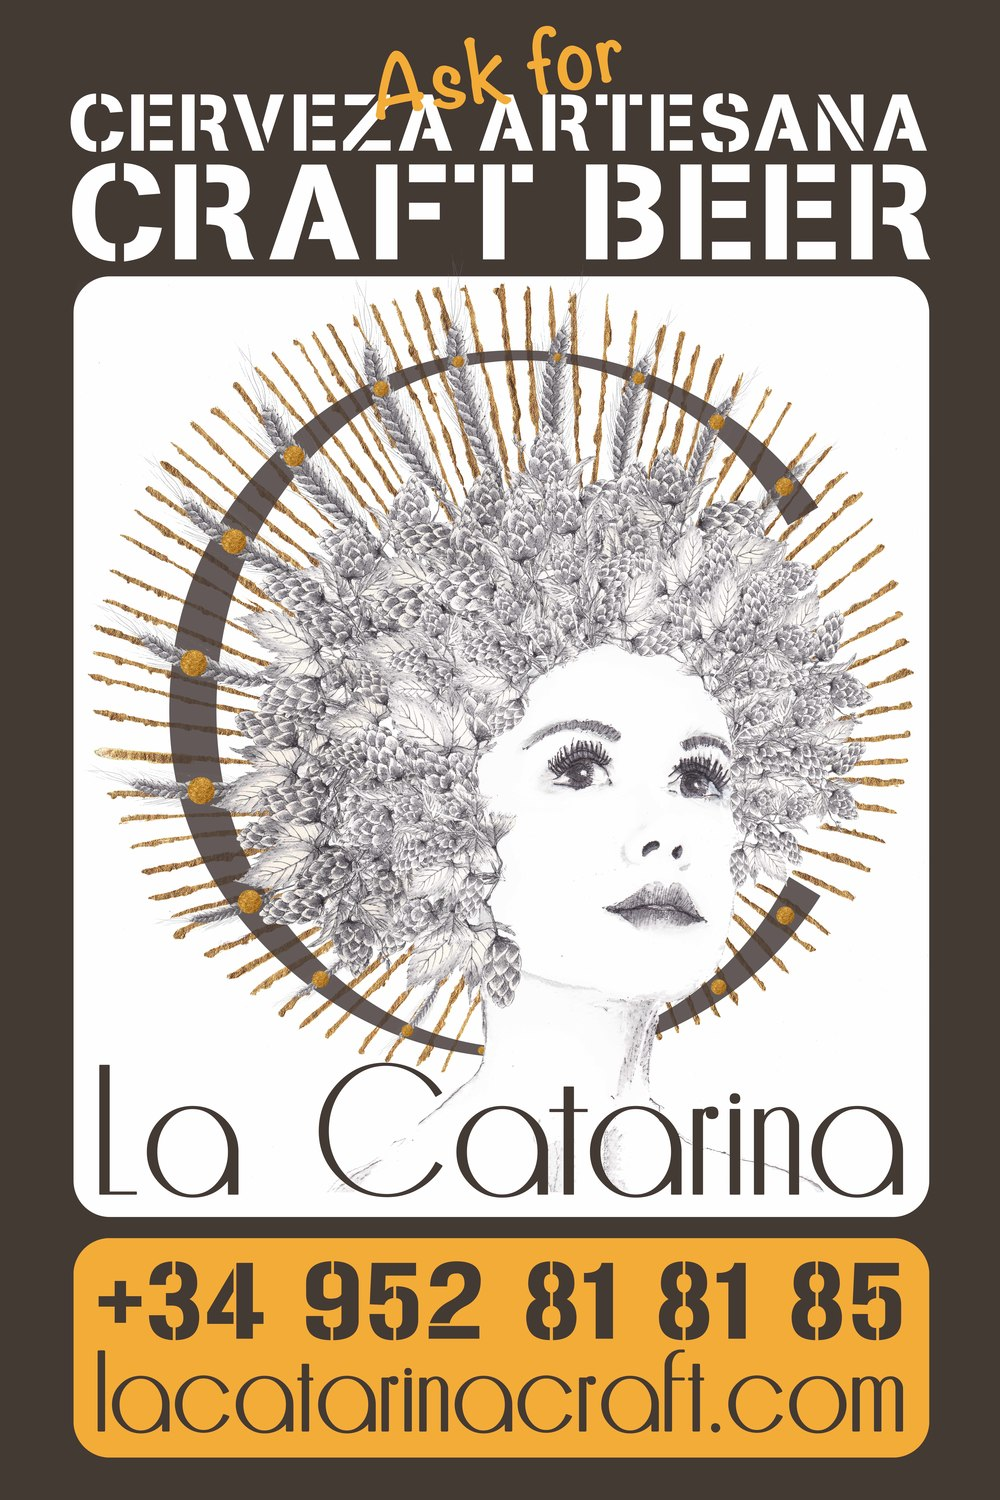 La Catarina CARTEL WEB.jpg